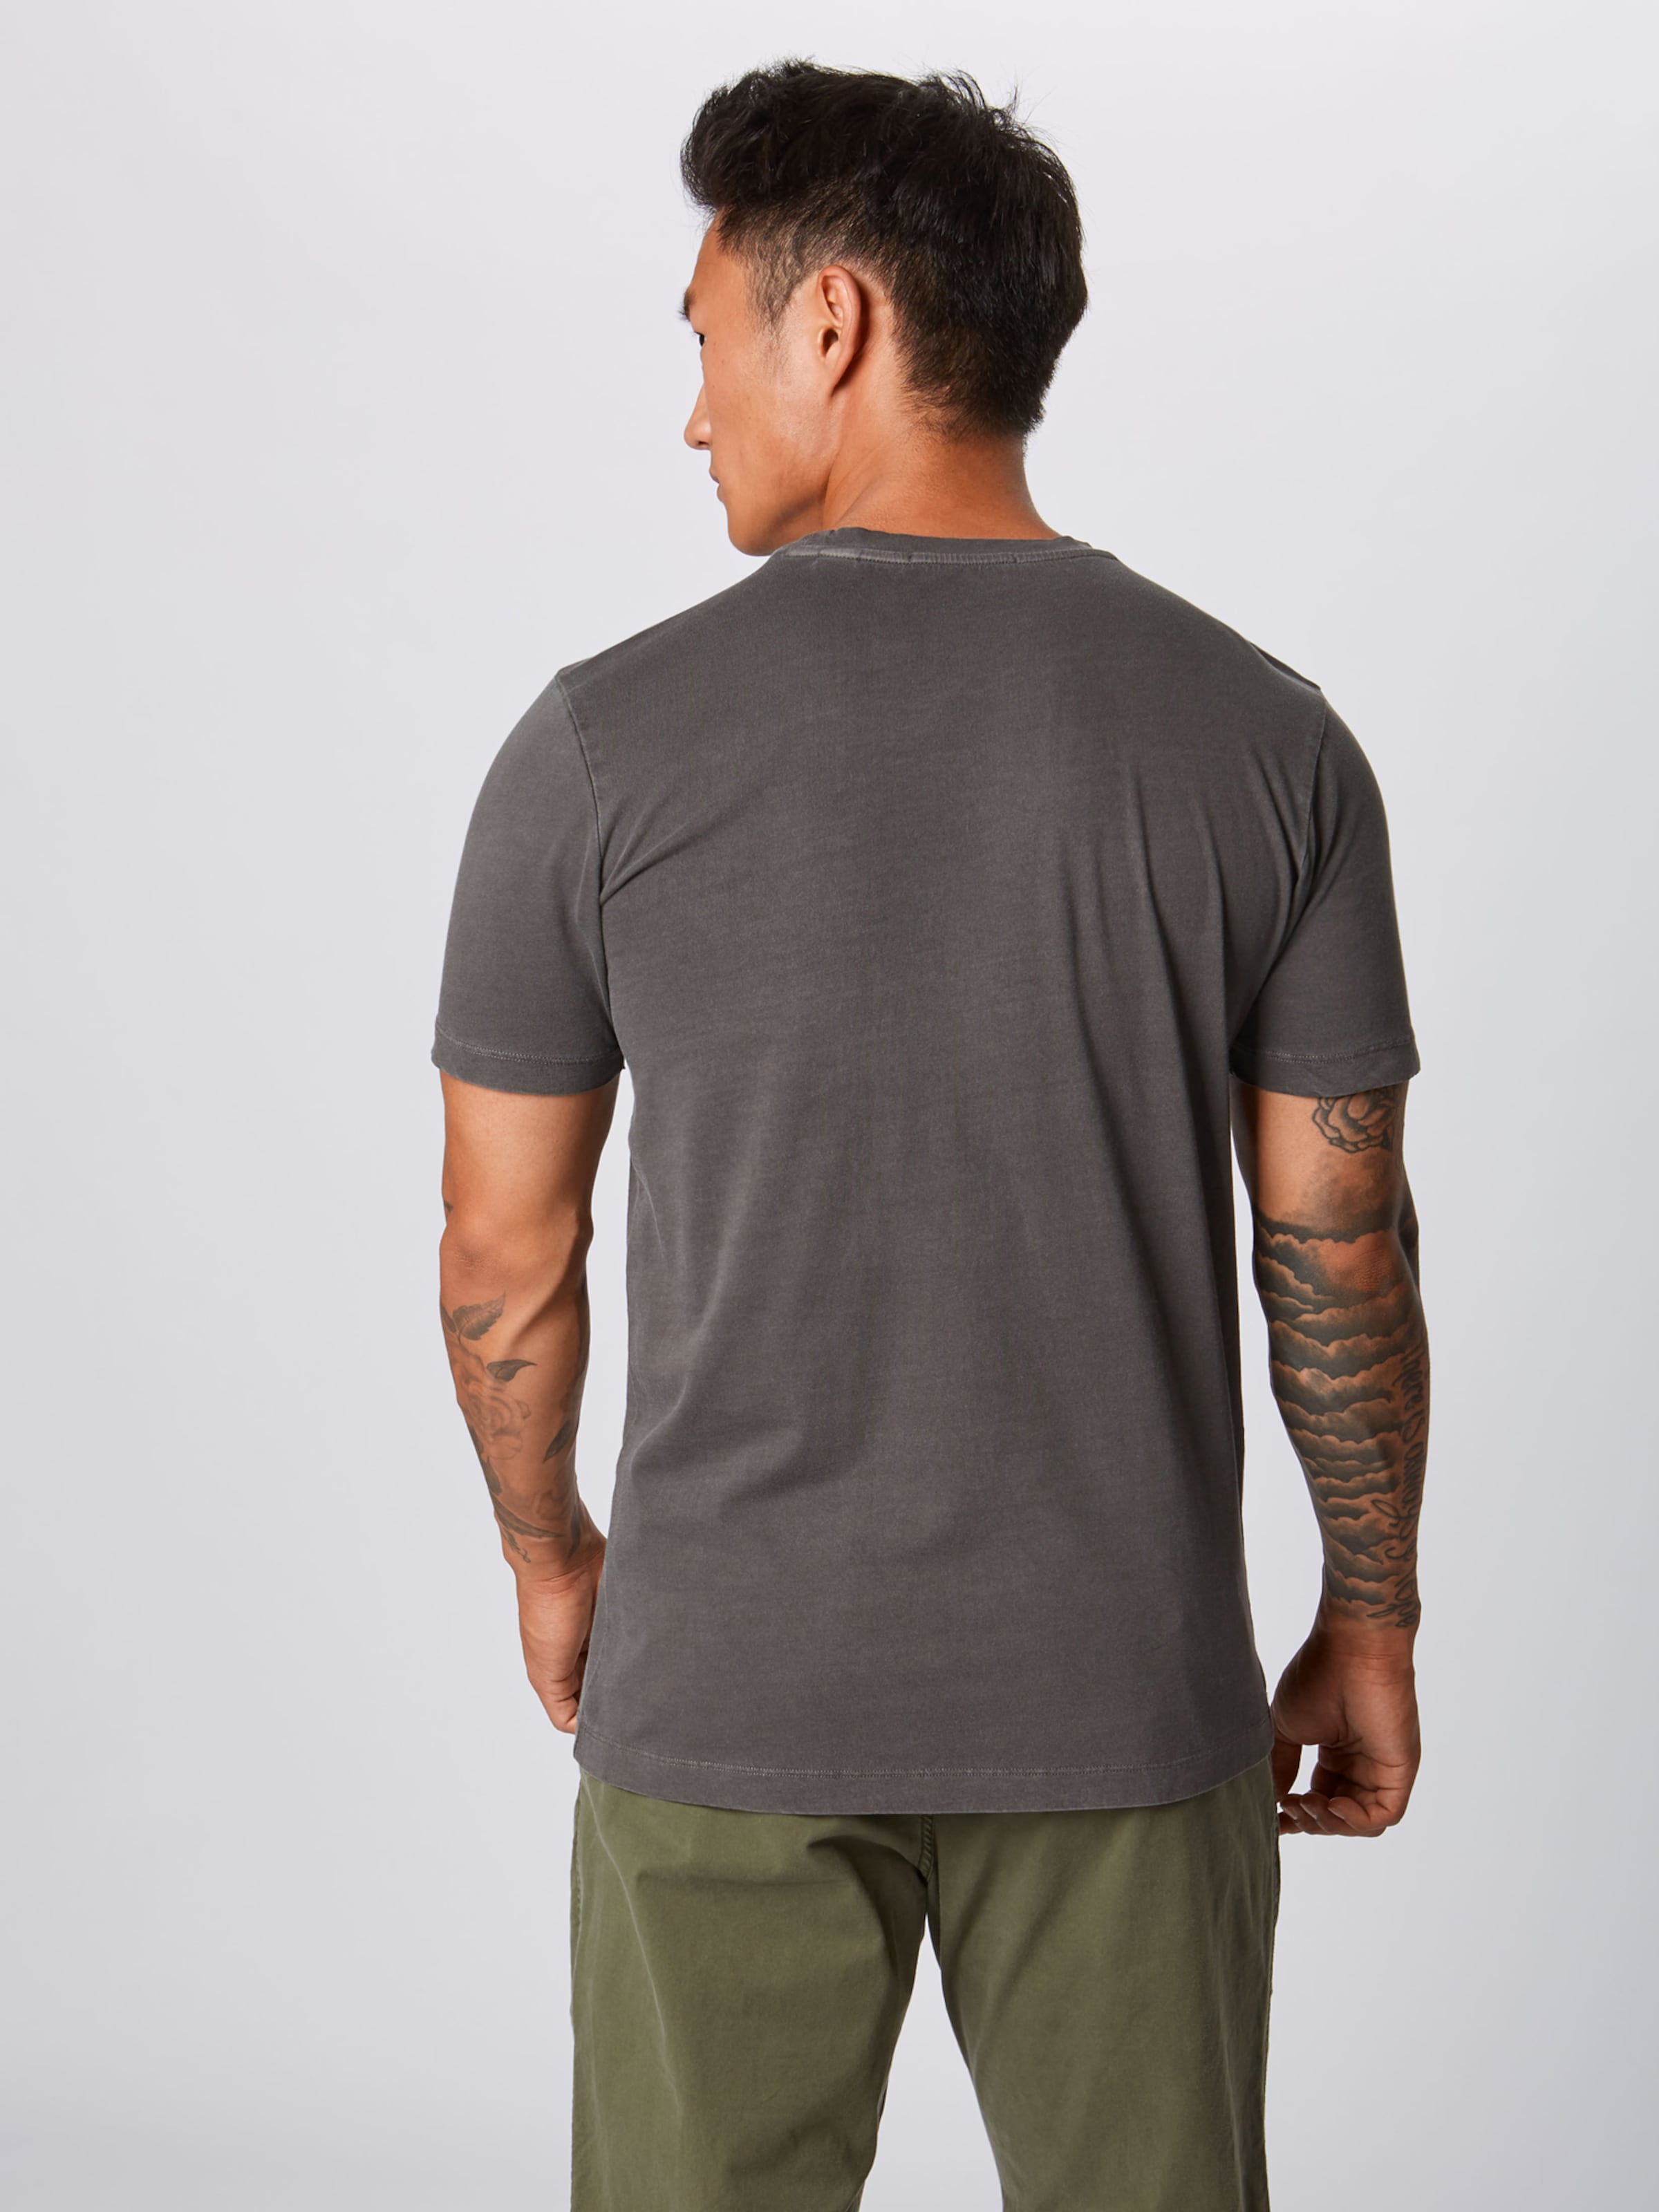 Anthrazit In Scotchamp; Soda dyed Crewneck 'classic Garment Tee' Shirt 6gf7yb